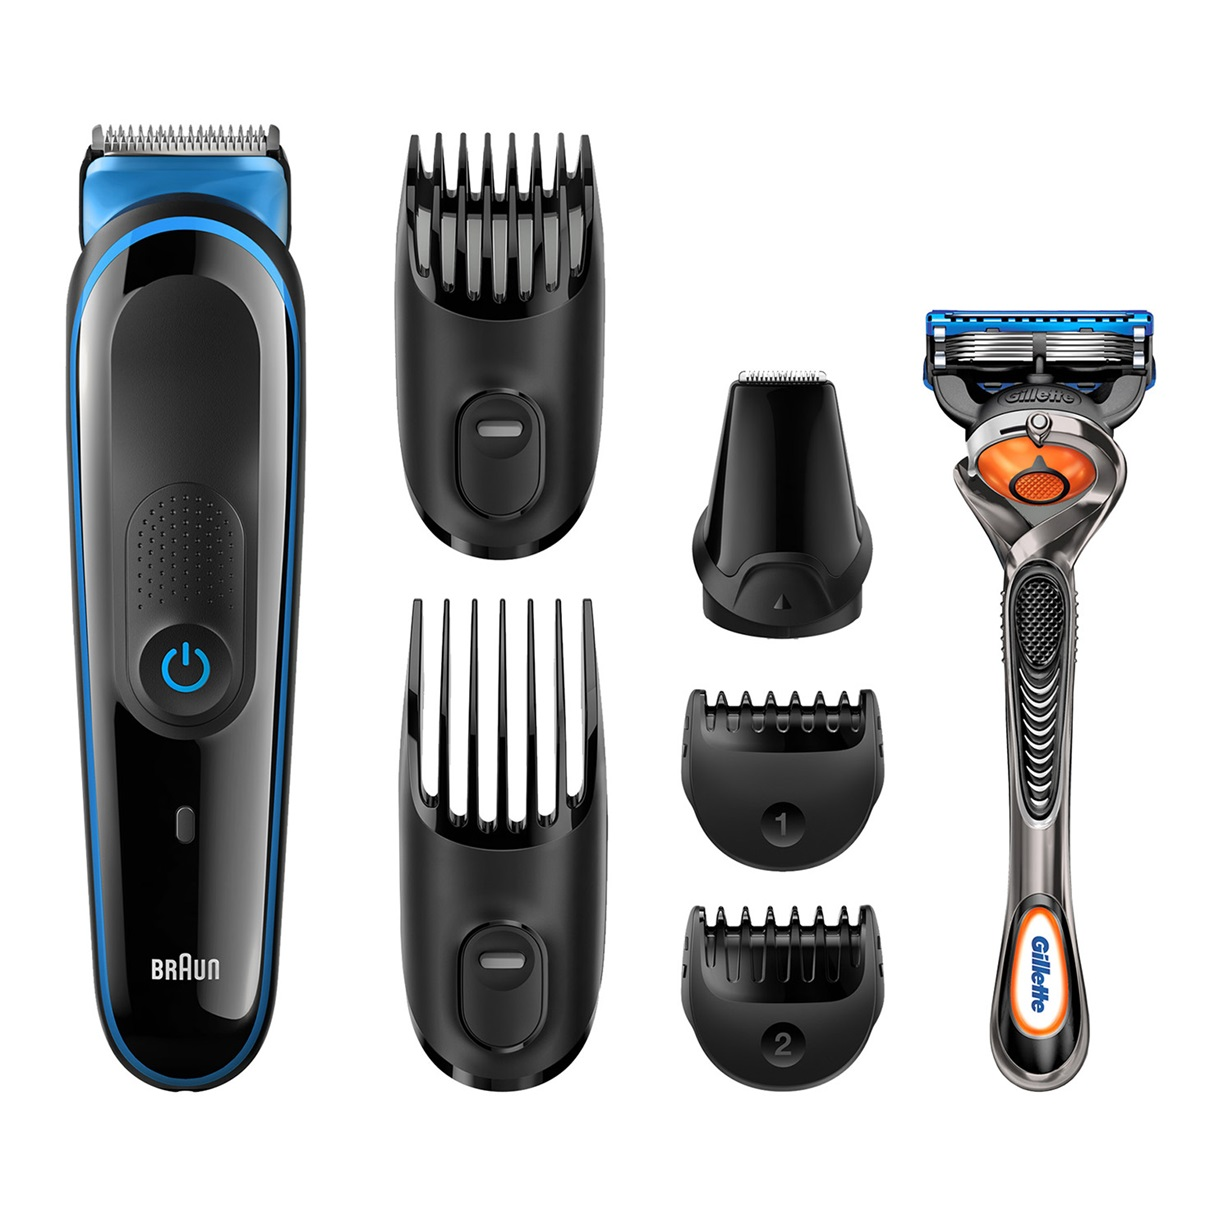 Braun multi grooming kit MGK3045